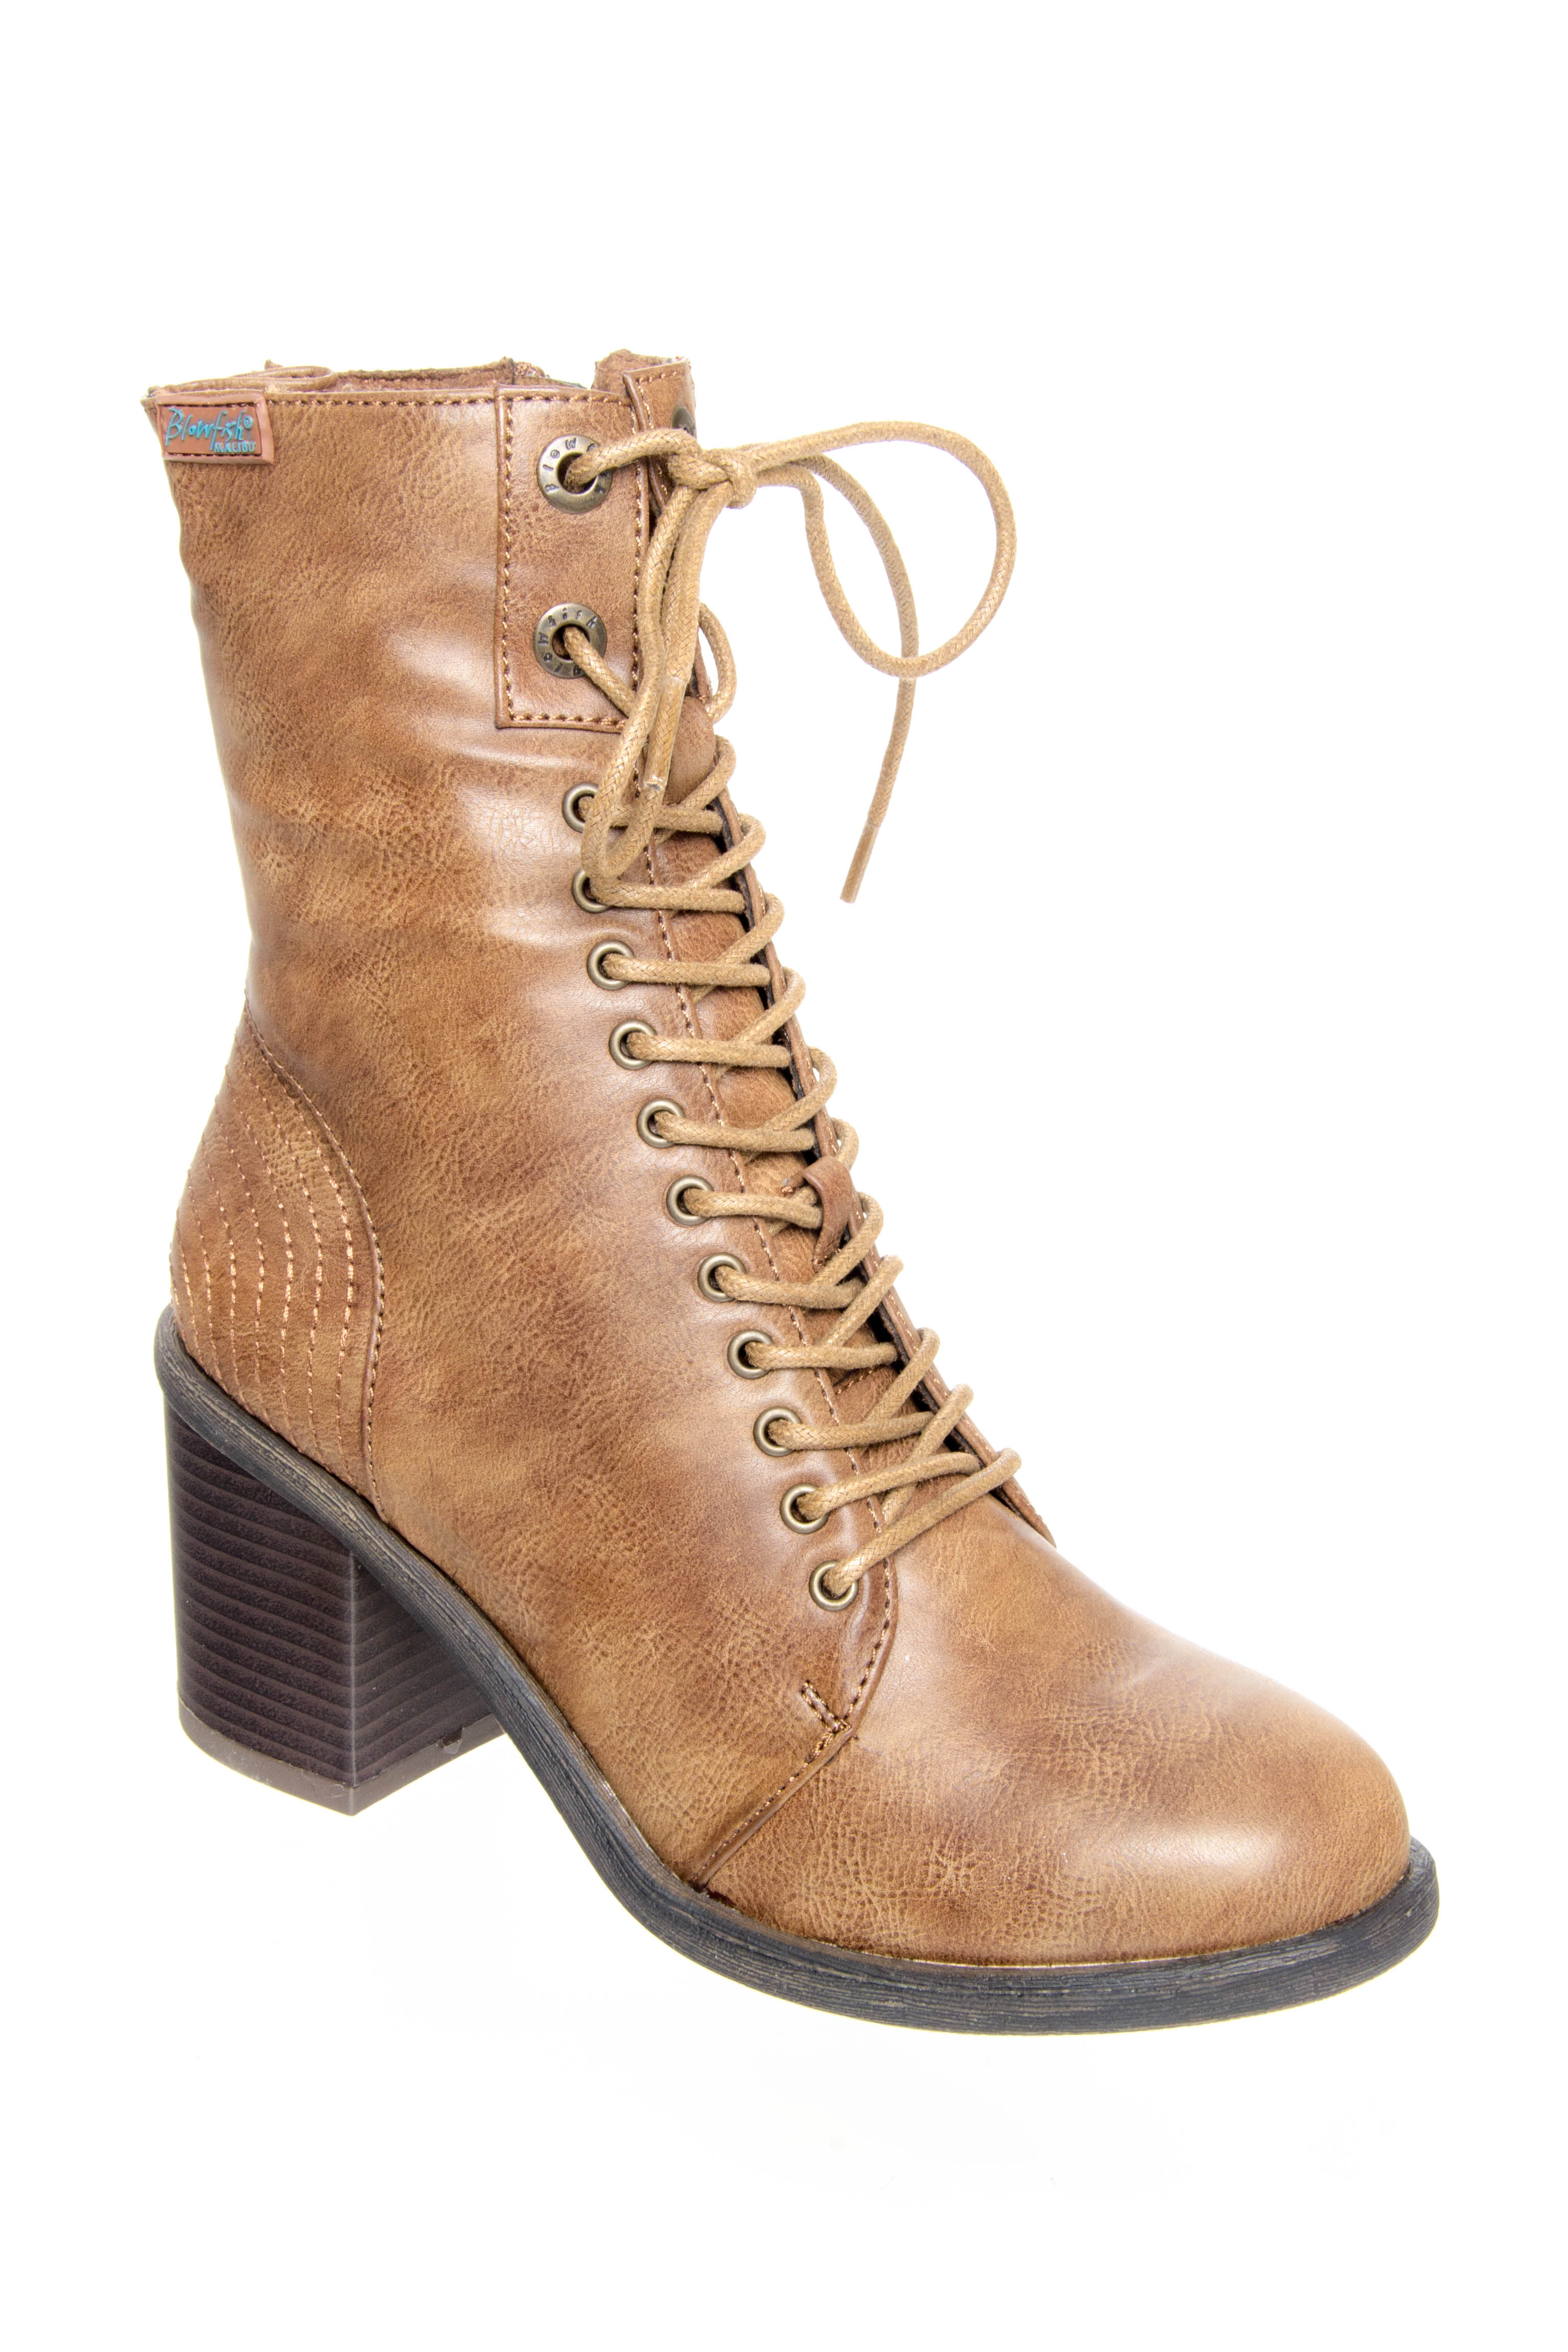 Blowfish Mammer Mid Heel Boots - Whiskey